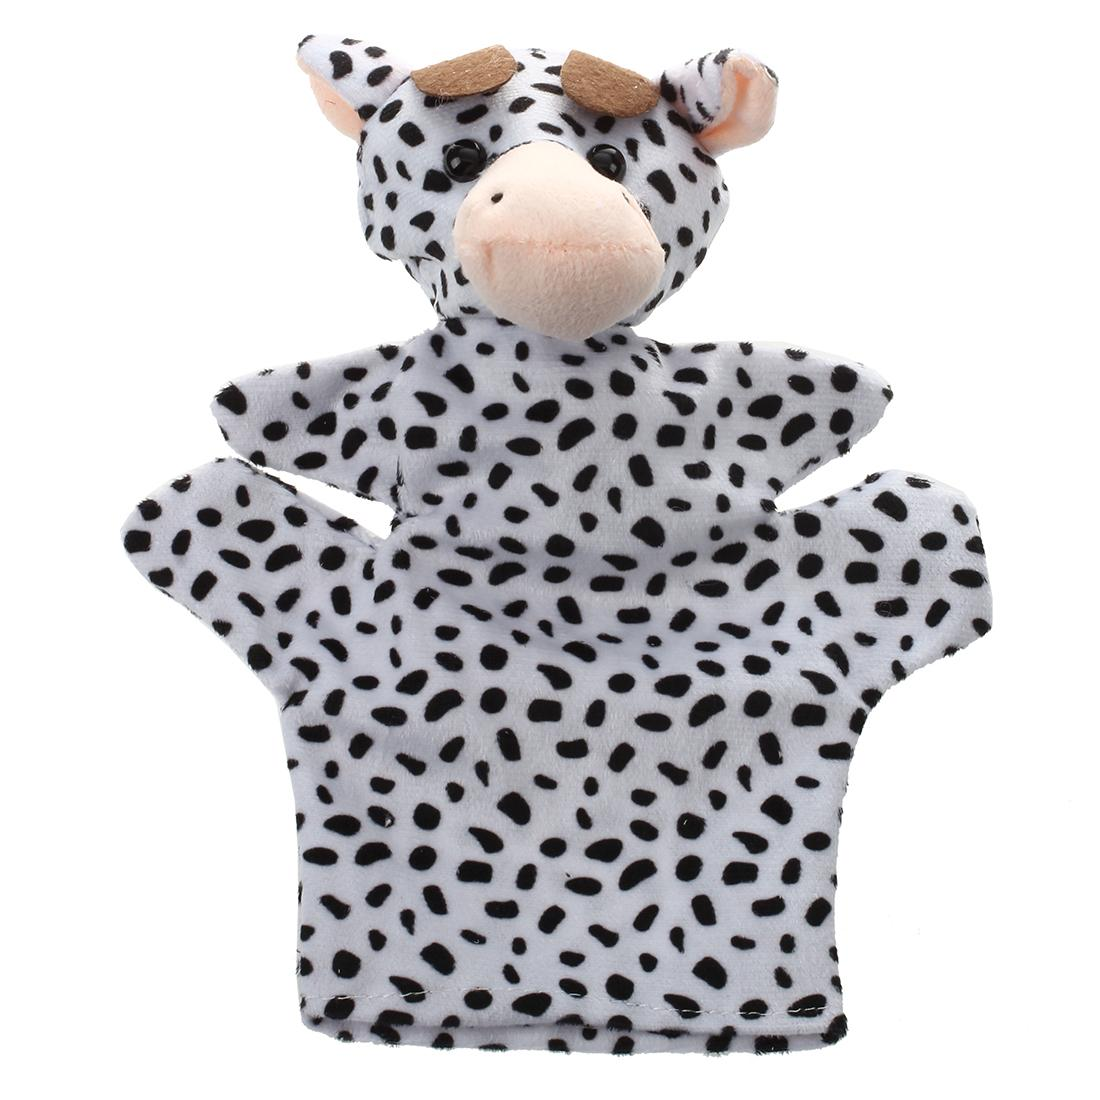 New Cute Baby Child Zoo Farm Animal Hand Sock Glove Puppet Finger Sack Plush Toy New